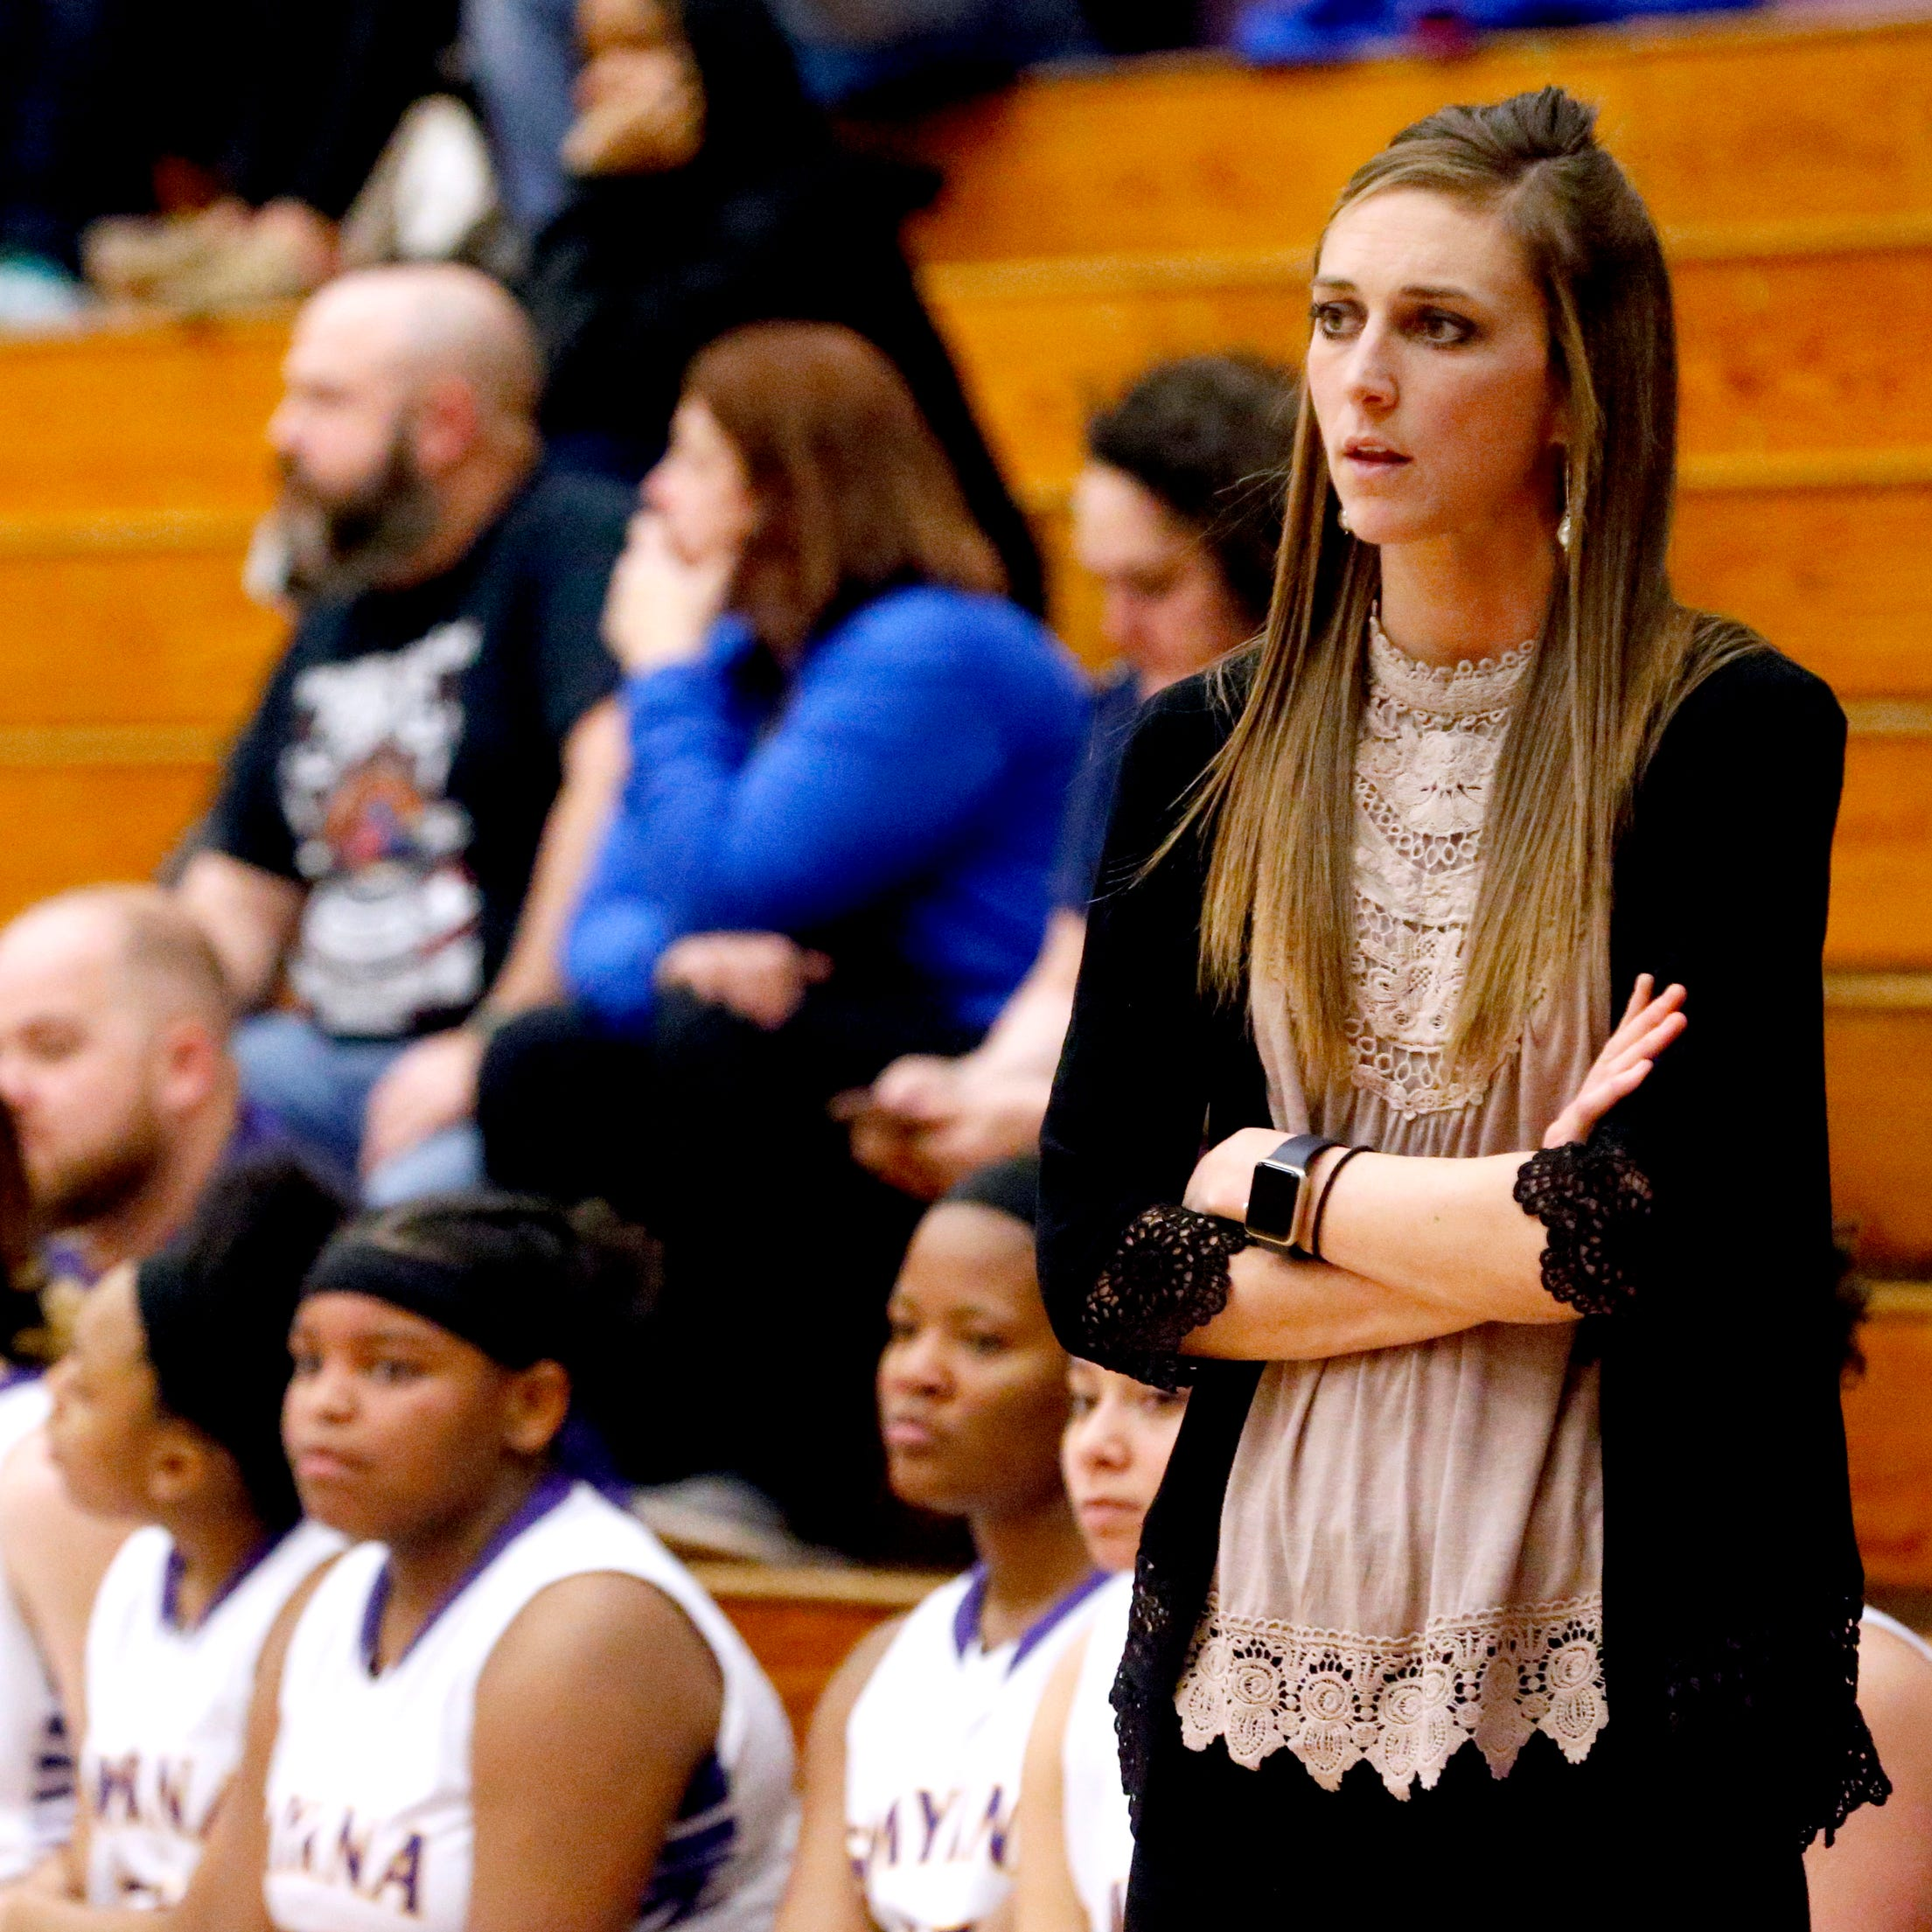 Smyrna girls basketball coach Jordyn Hartsfield steps down to take assistant position at Blackman